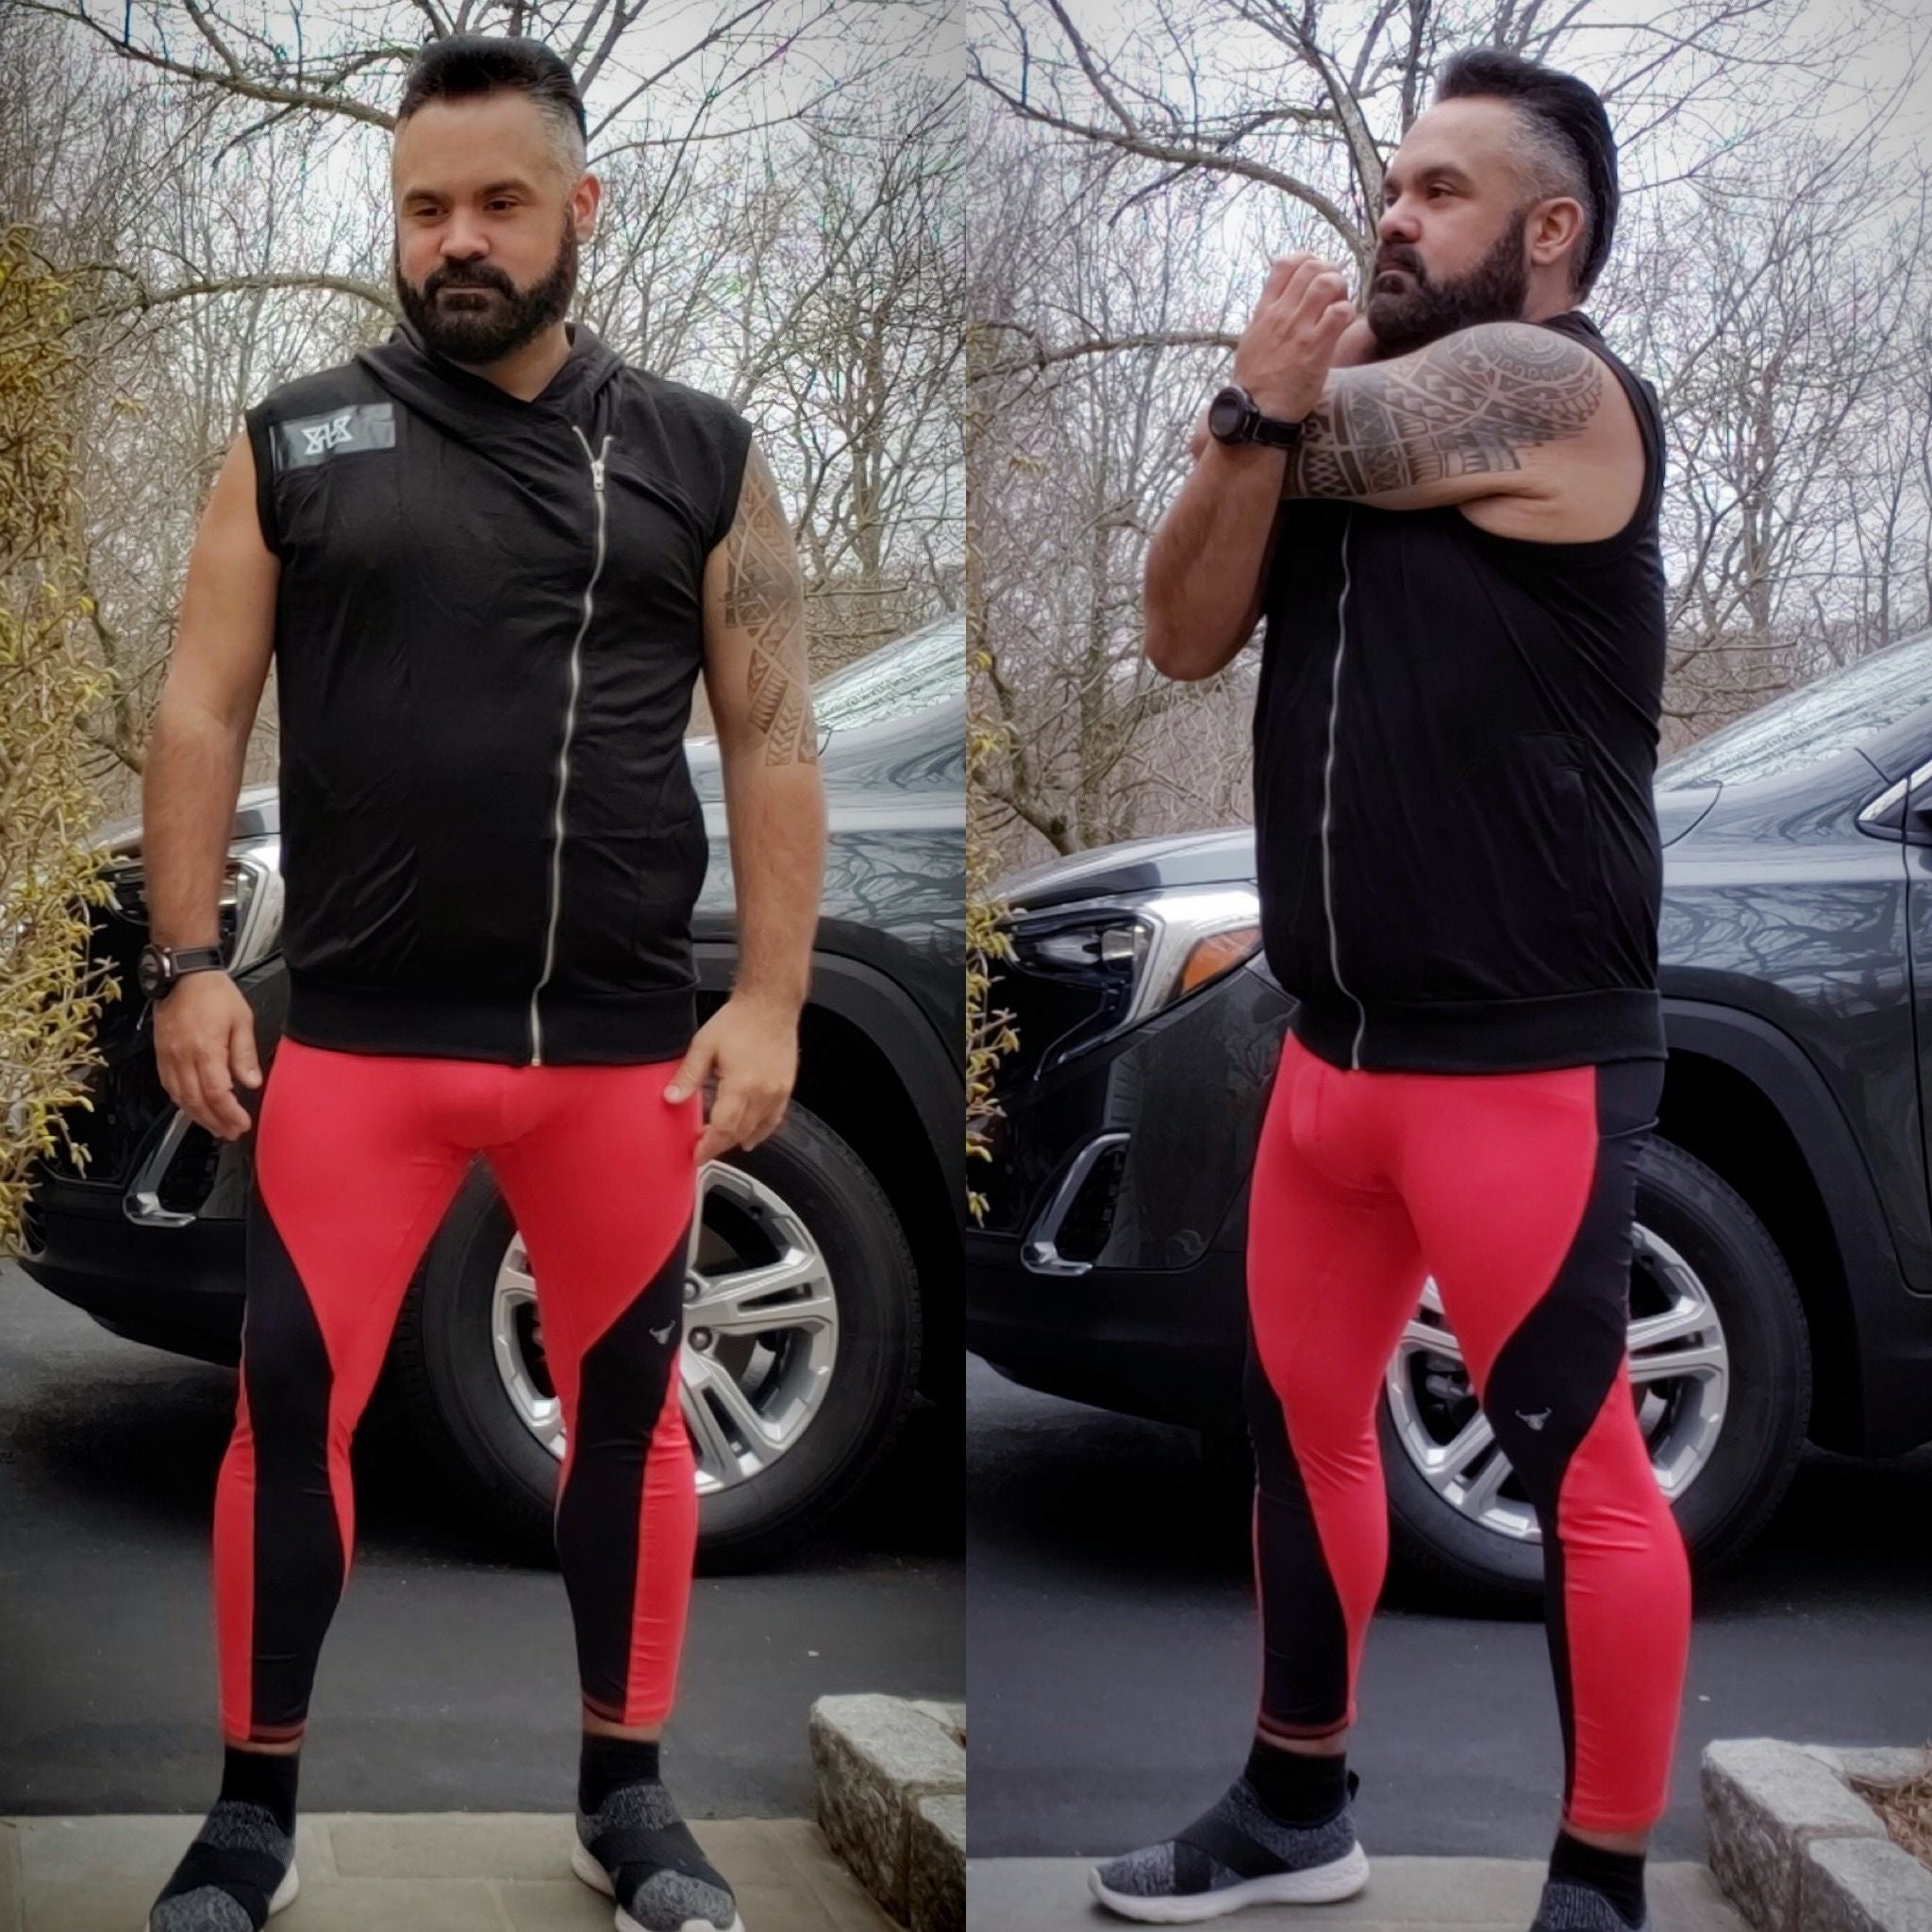 Man with beard stretching in Meggings